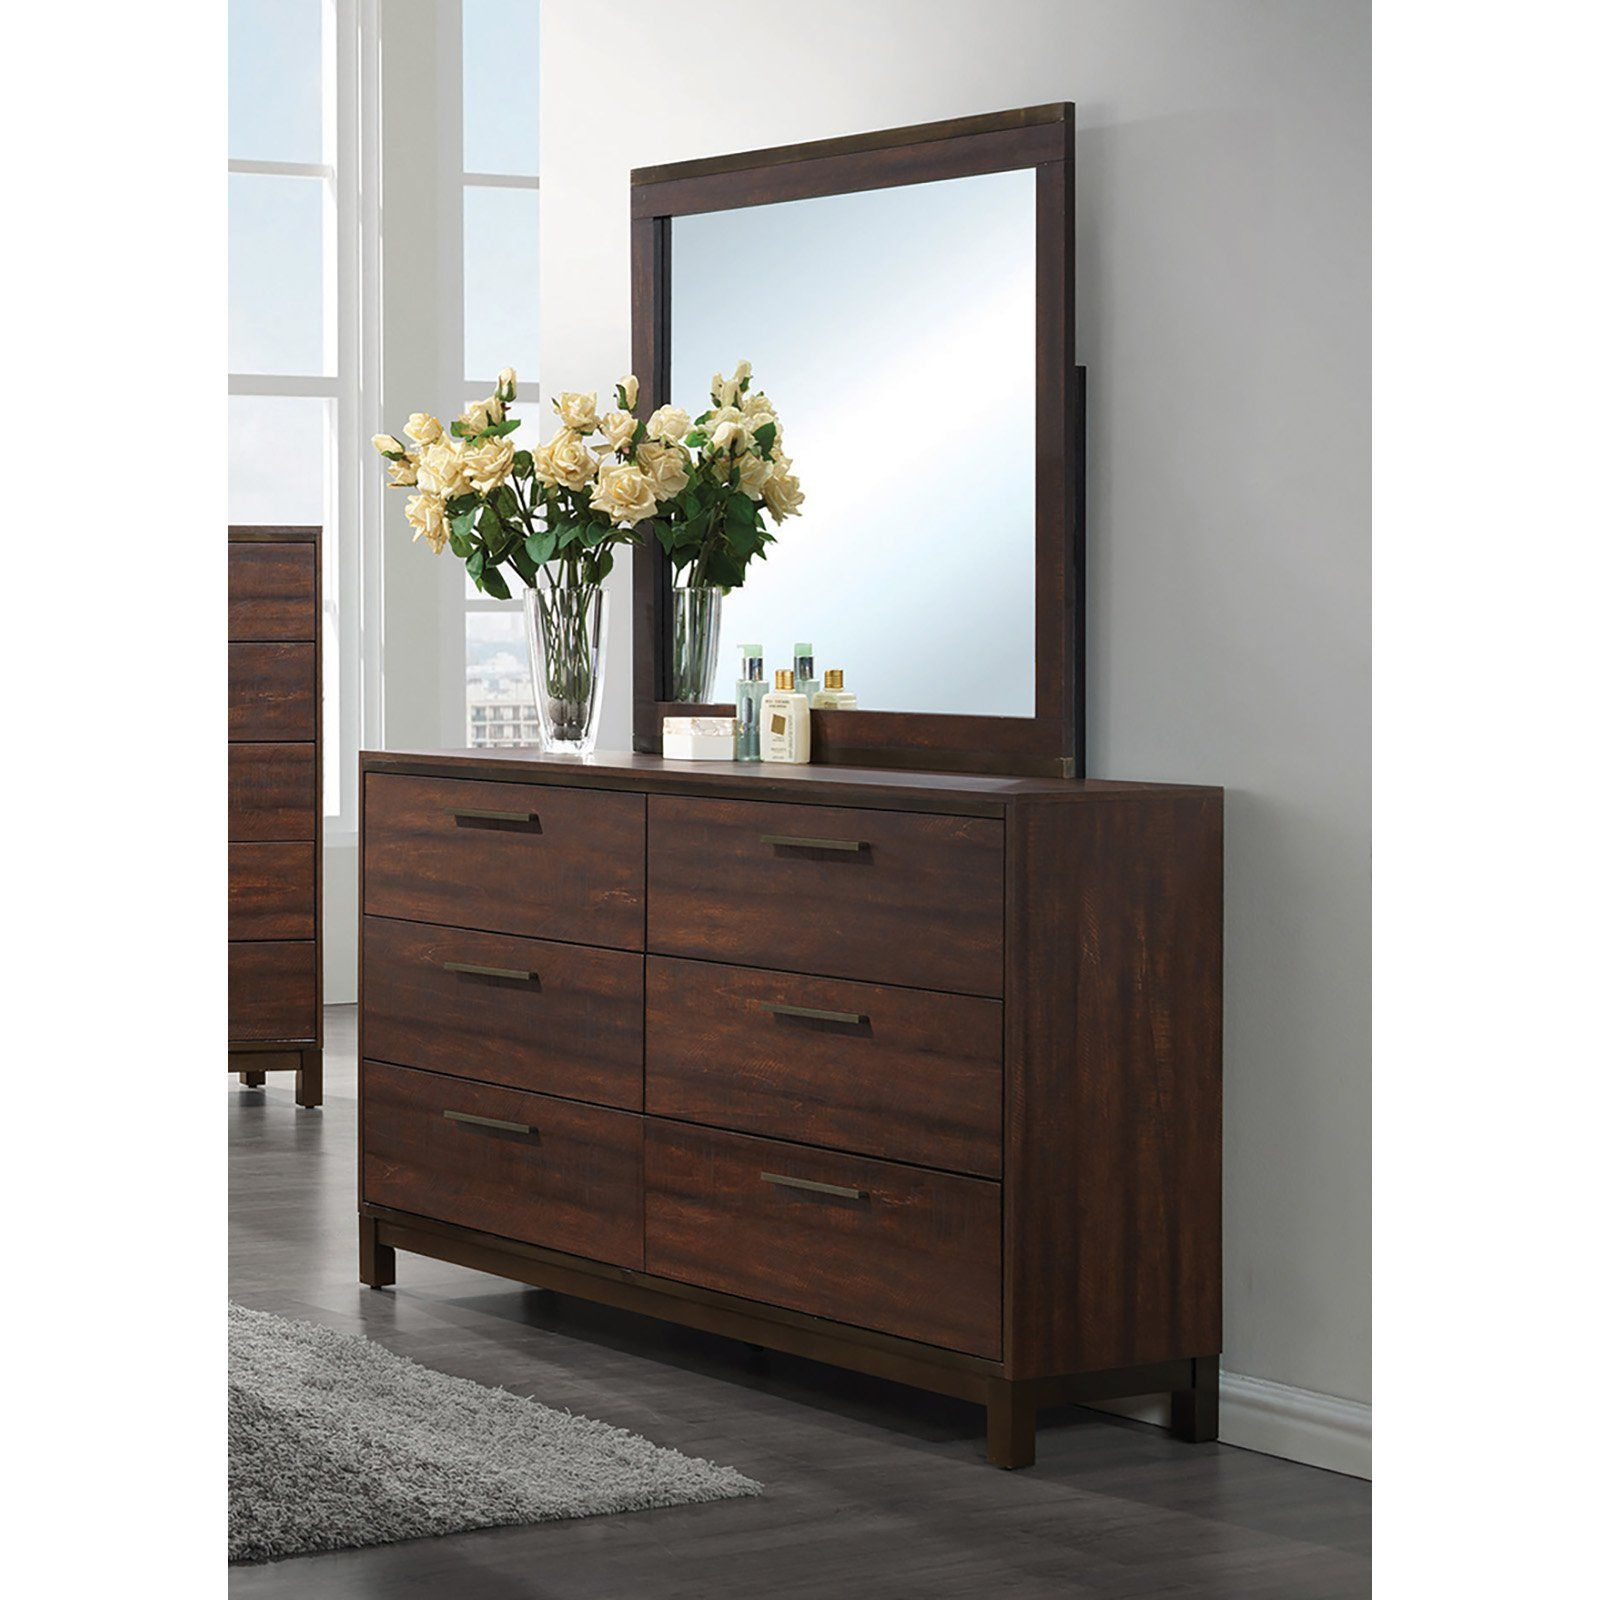 Coaster Furniture Edmonton 6 Drawer Dresser Crafted For The Modern Bedroom Features Simple Lines And A